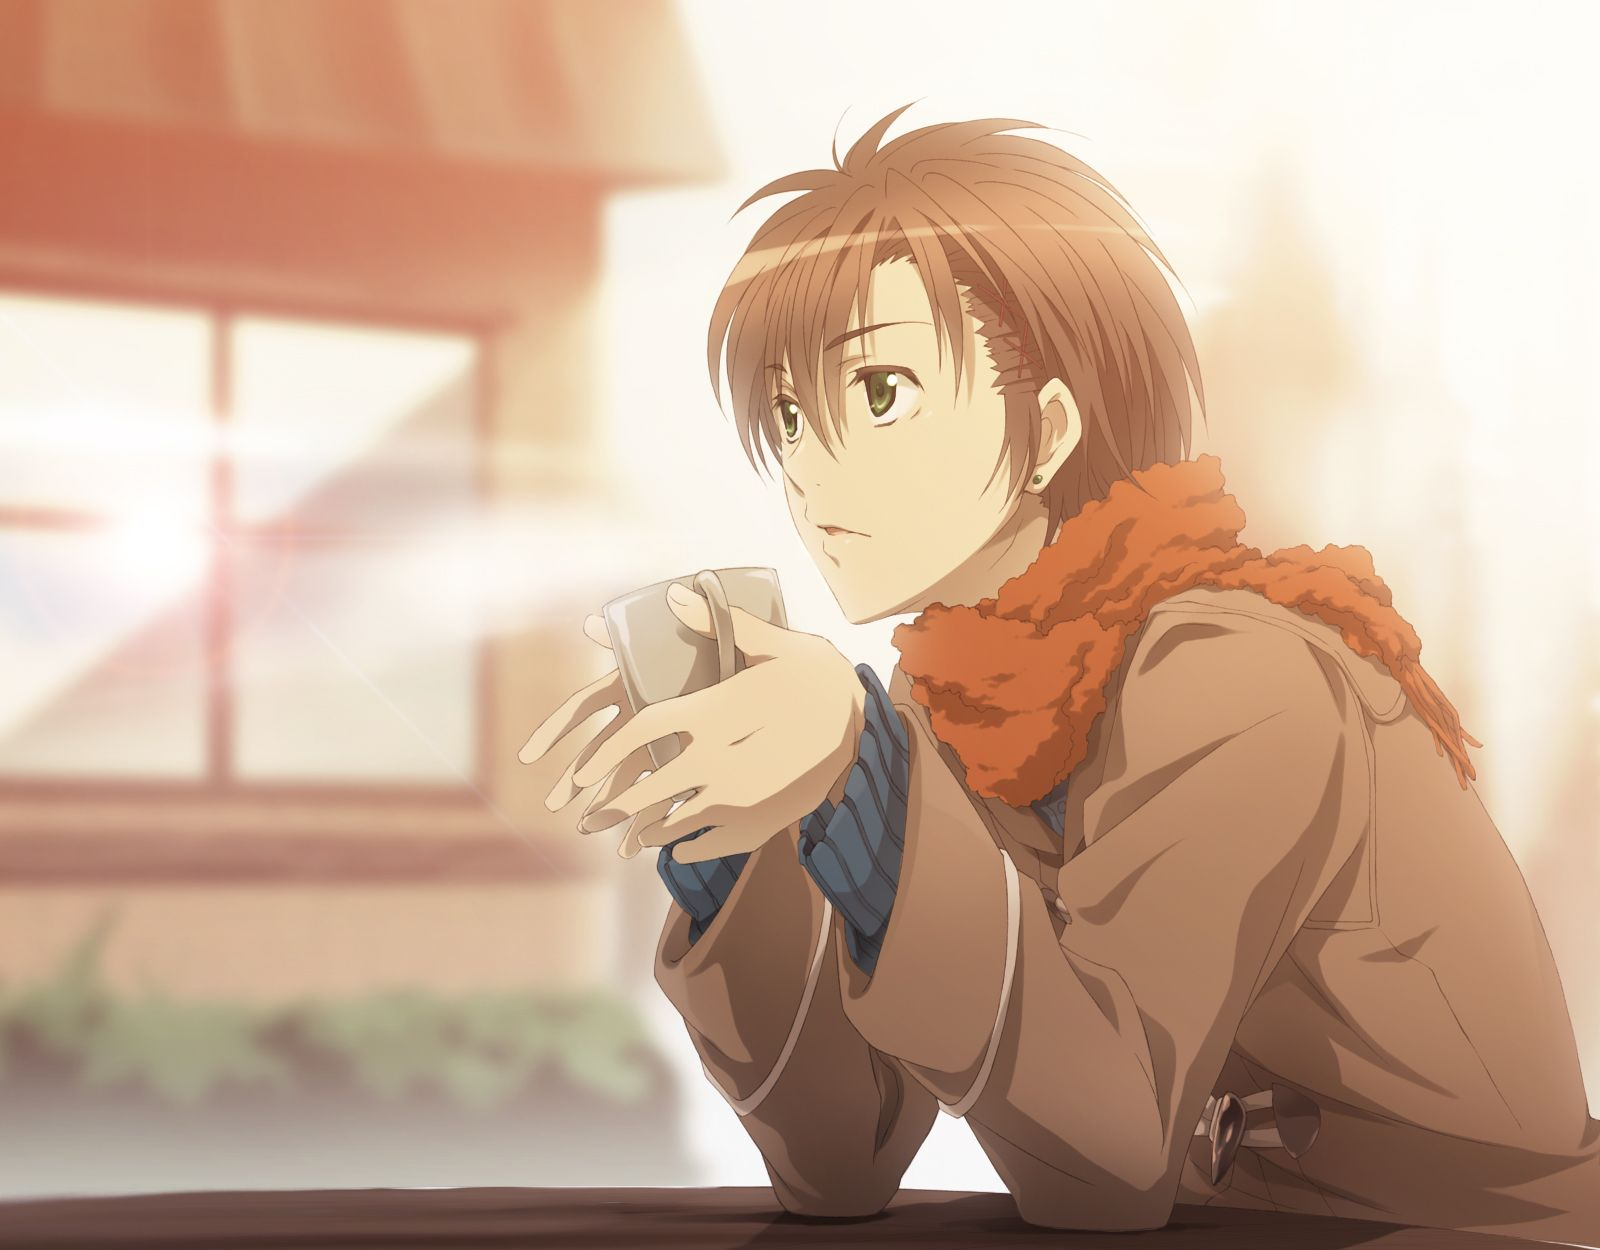 Anime guy with brown hair and green eyes